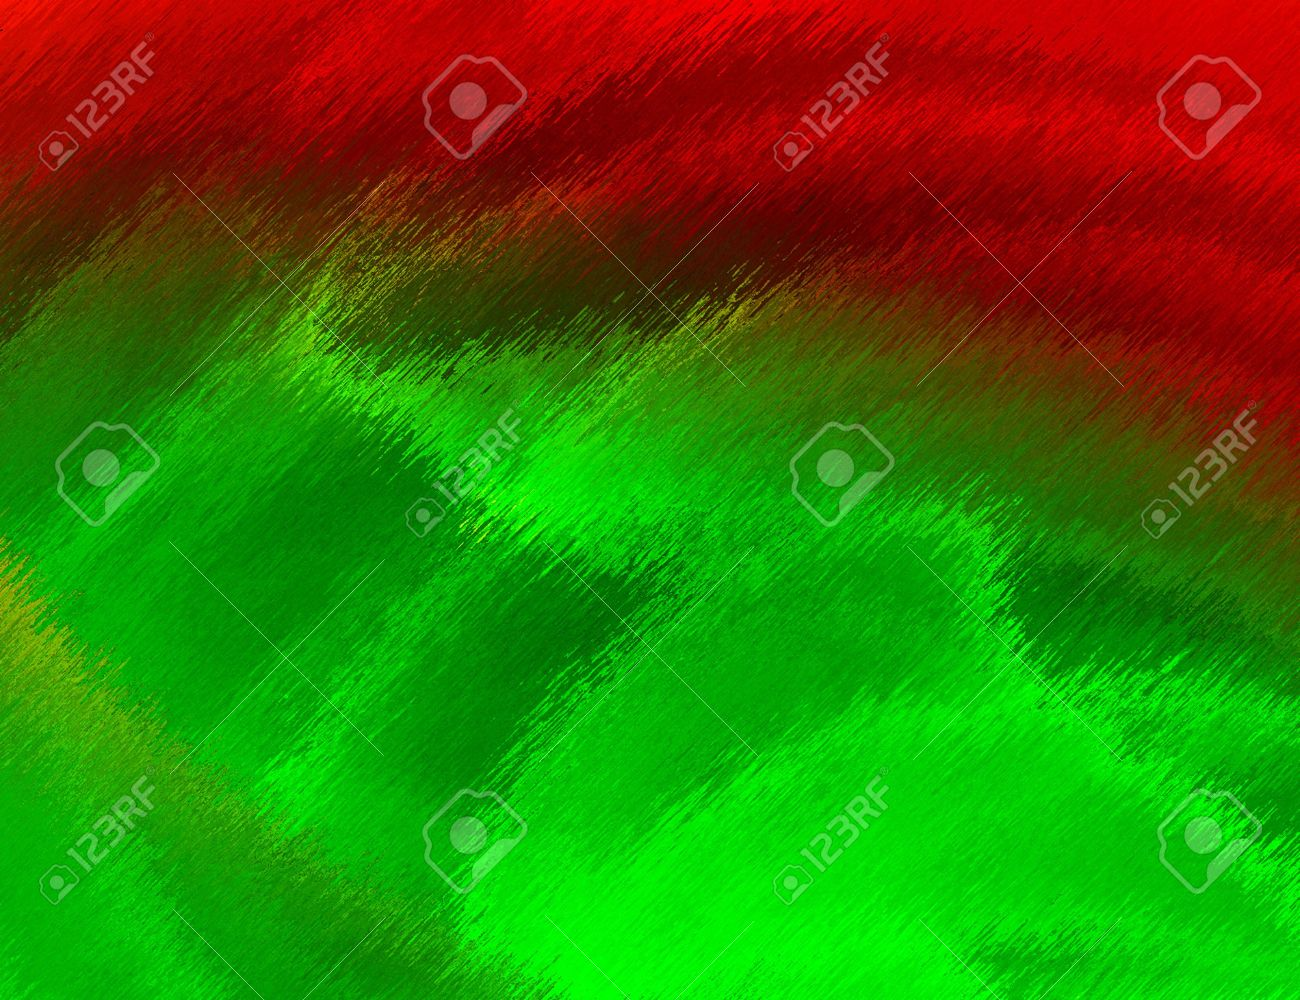 Red And Green Background Abstract Design With Red Green With Stock Photo Picture And Royalty Free Image Image 1842474